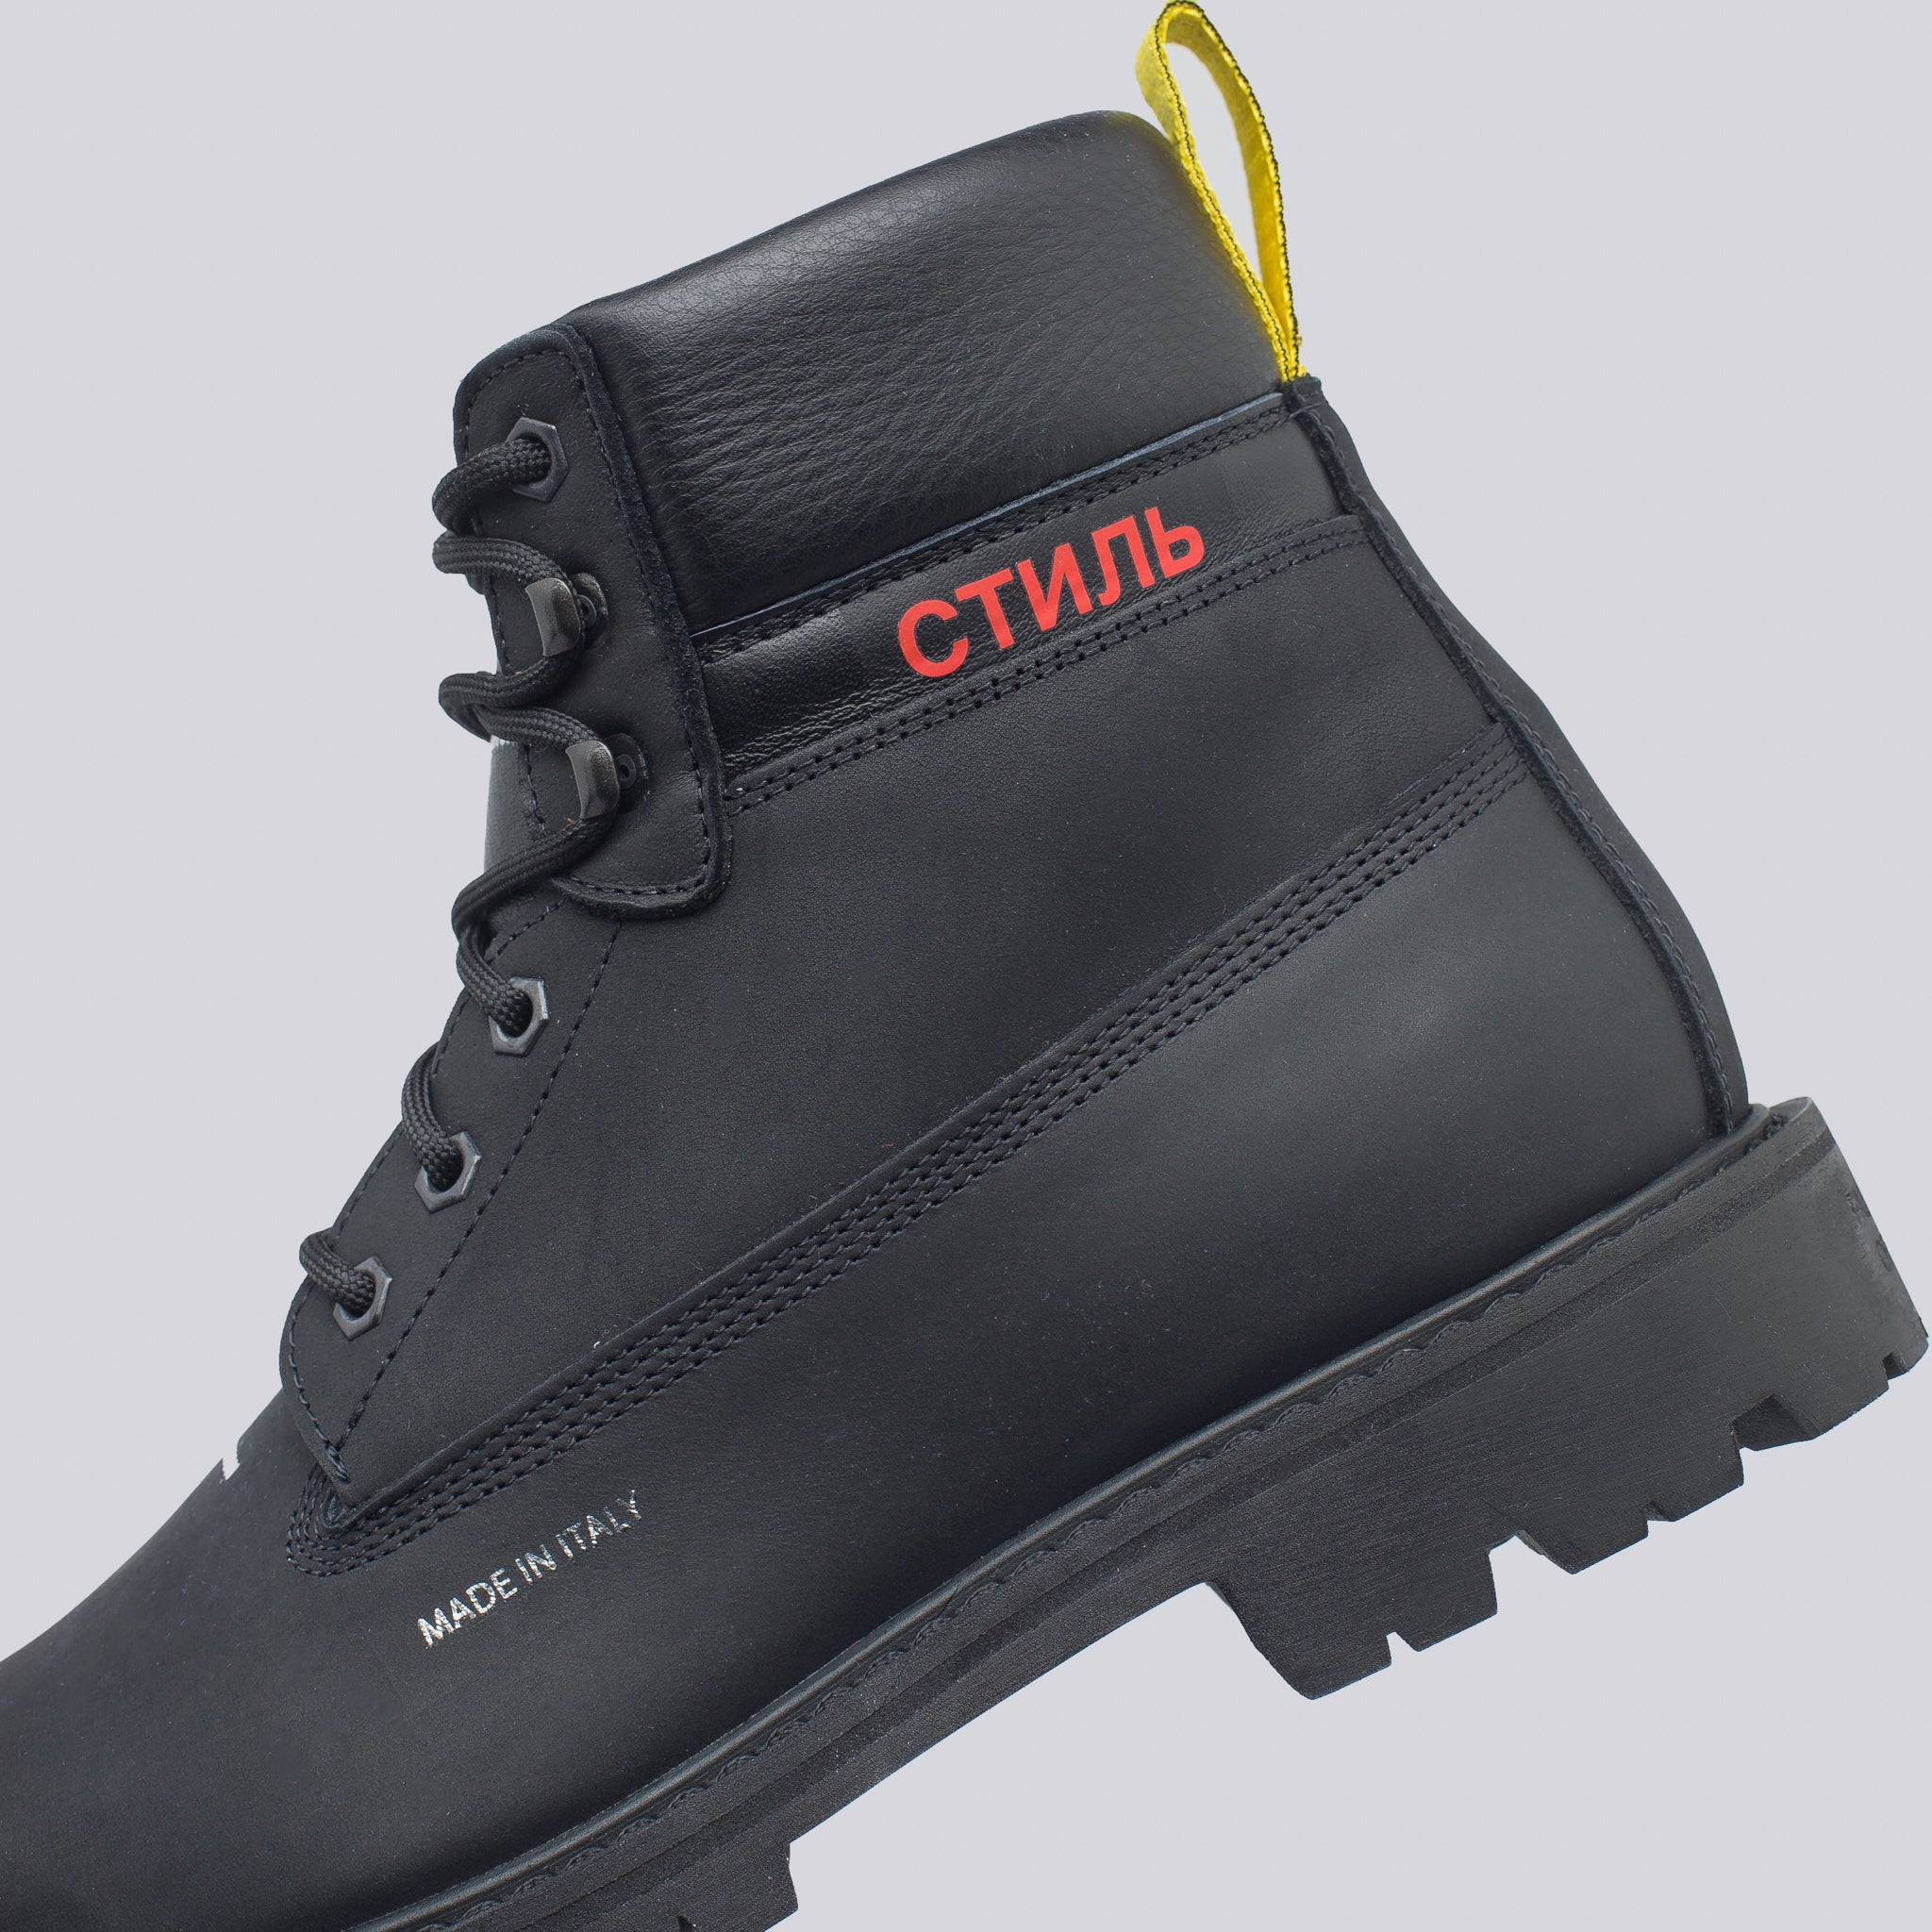 CTNMB Cleated Ankle Boots in Black/Red